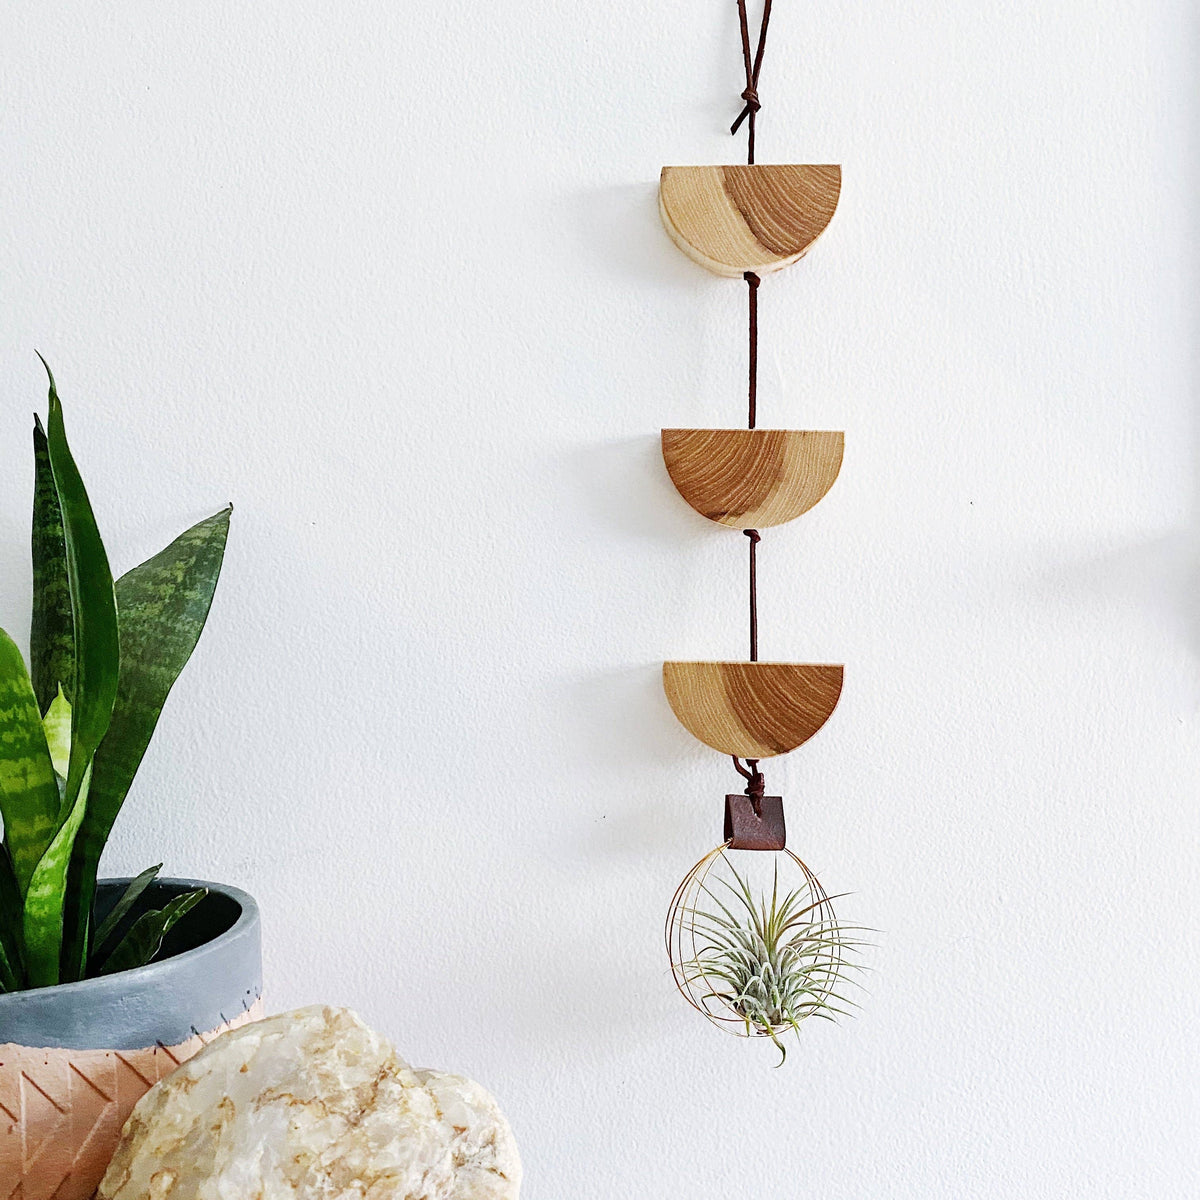 Modern U-Shaped Air Plant Wall Hanging